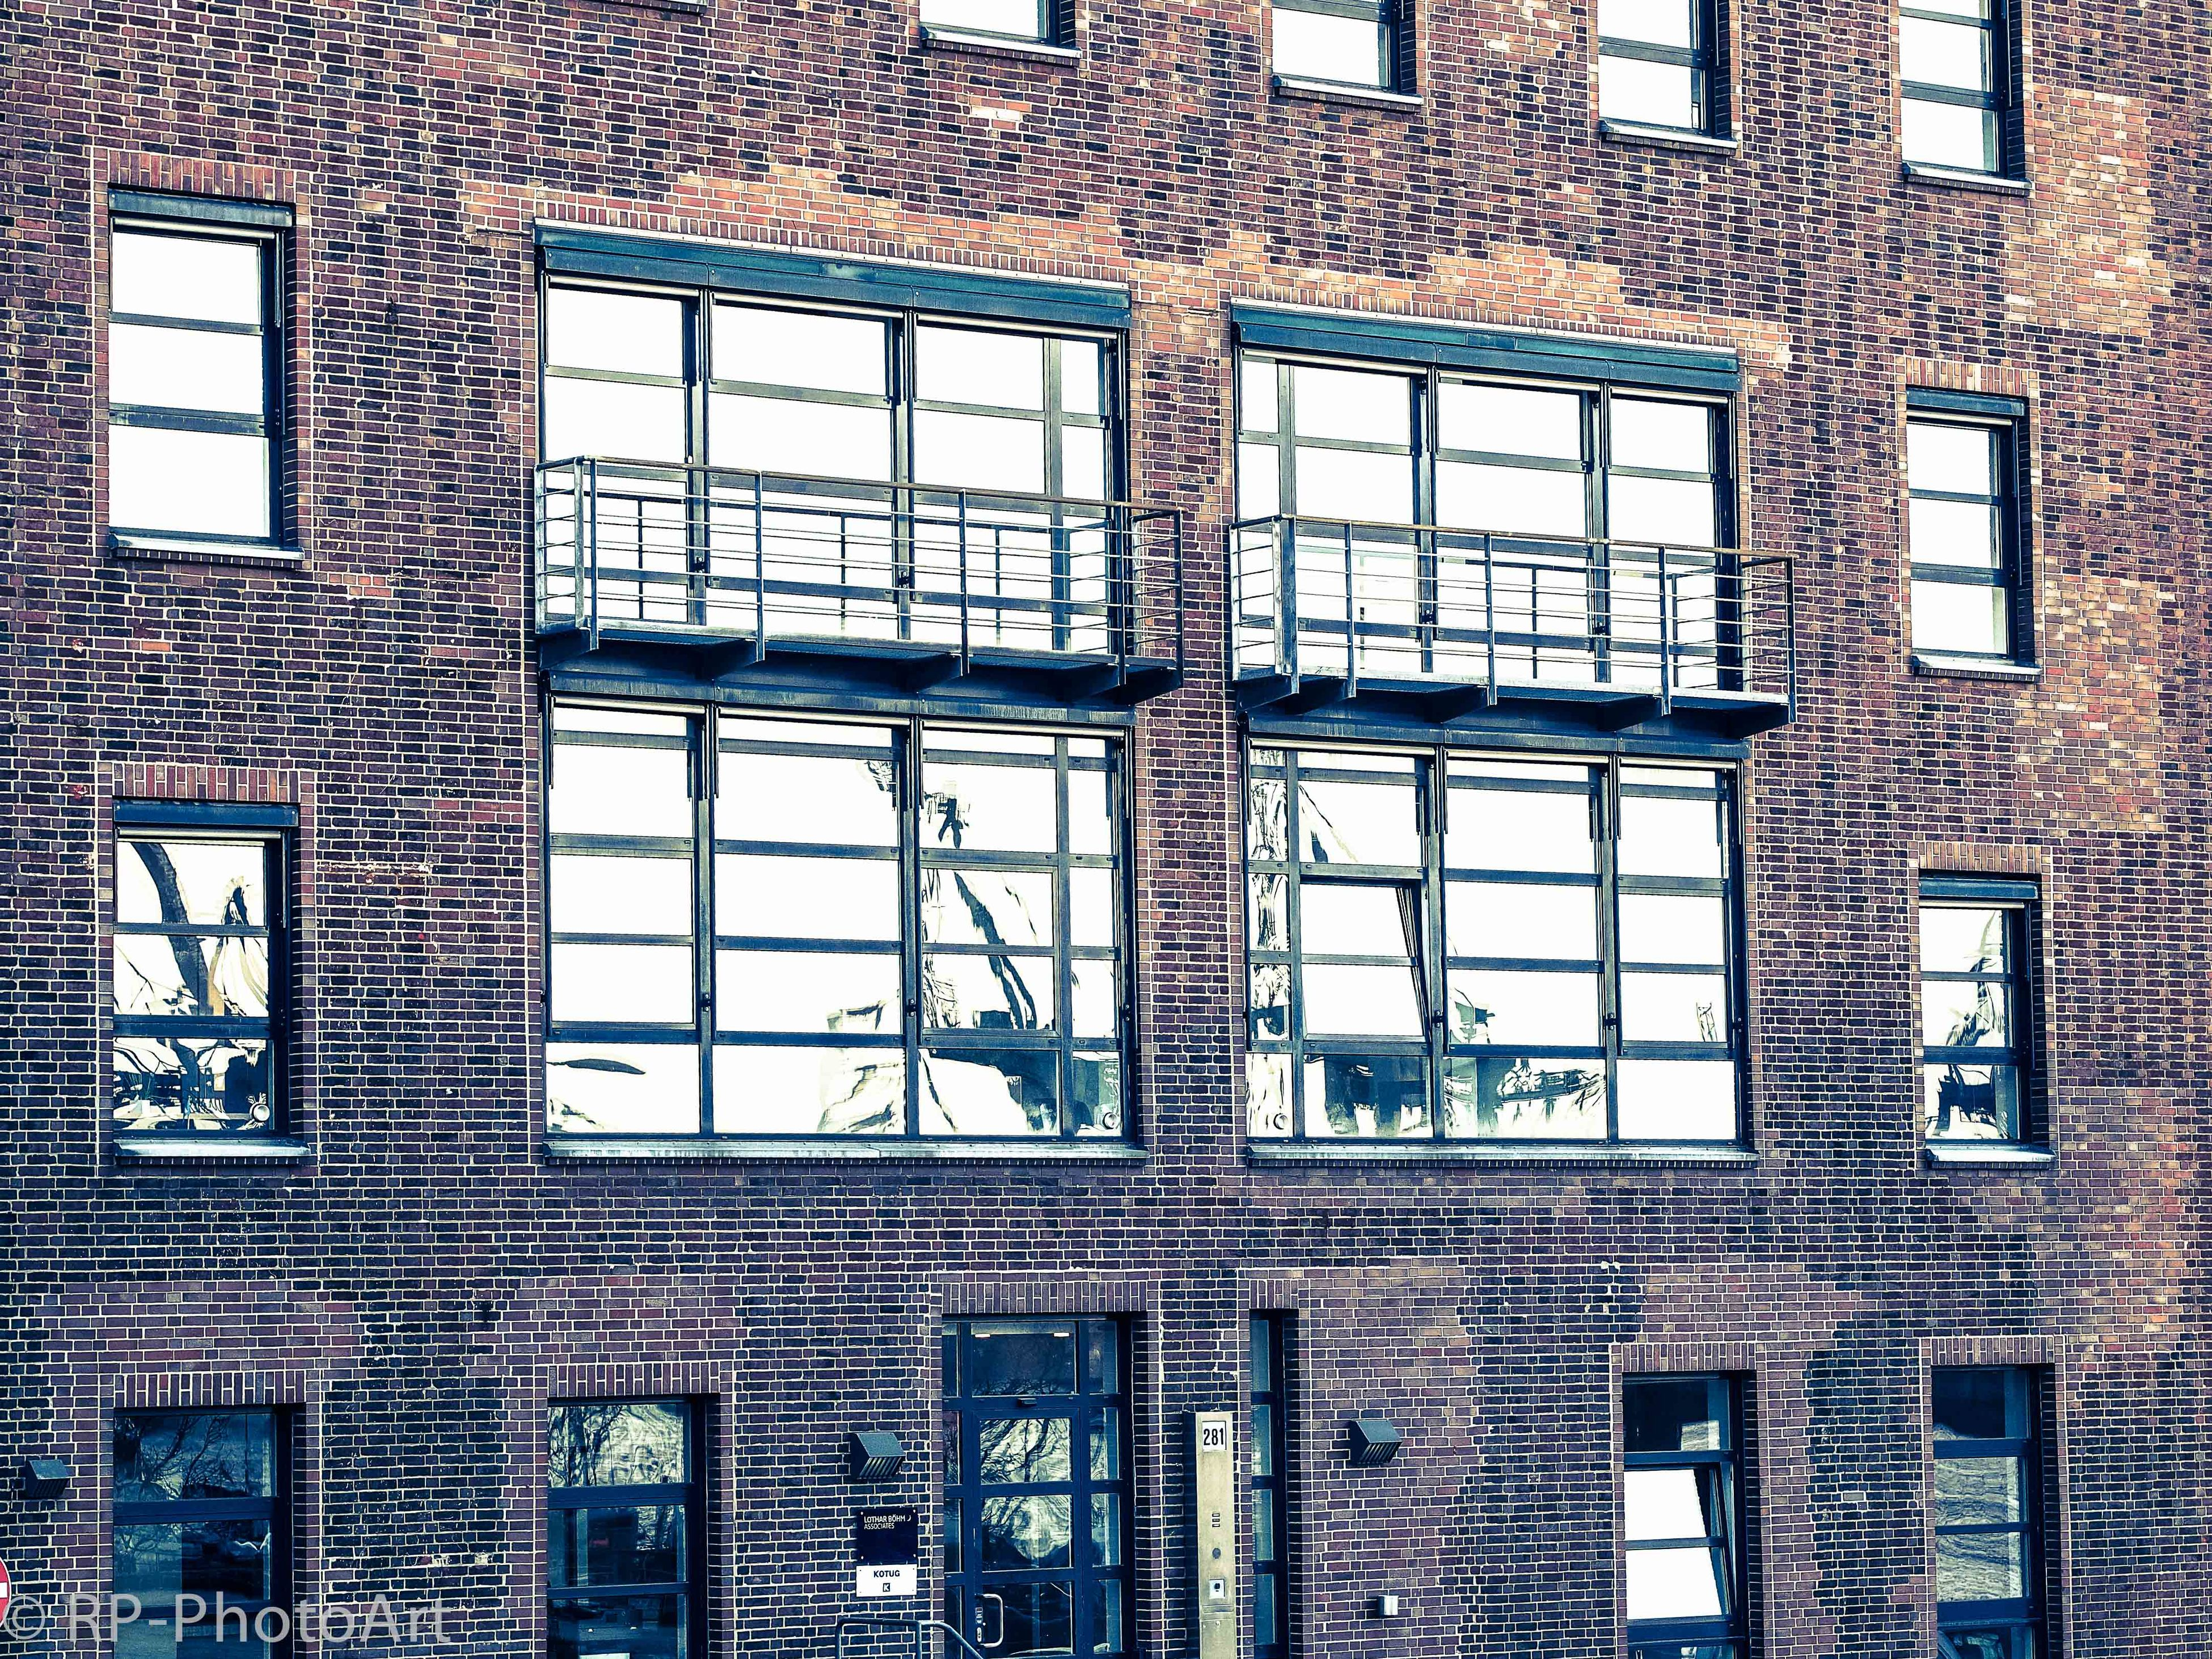 architecture, window, built structure, building exterior, full frame, backgrounds, glass - material, building, low angle view, pattern, residential building, residential structure, day, reflection, no people, city, brick wall, wall - building feature, outdoors, wall